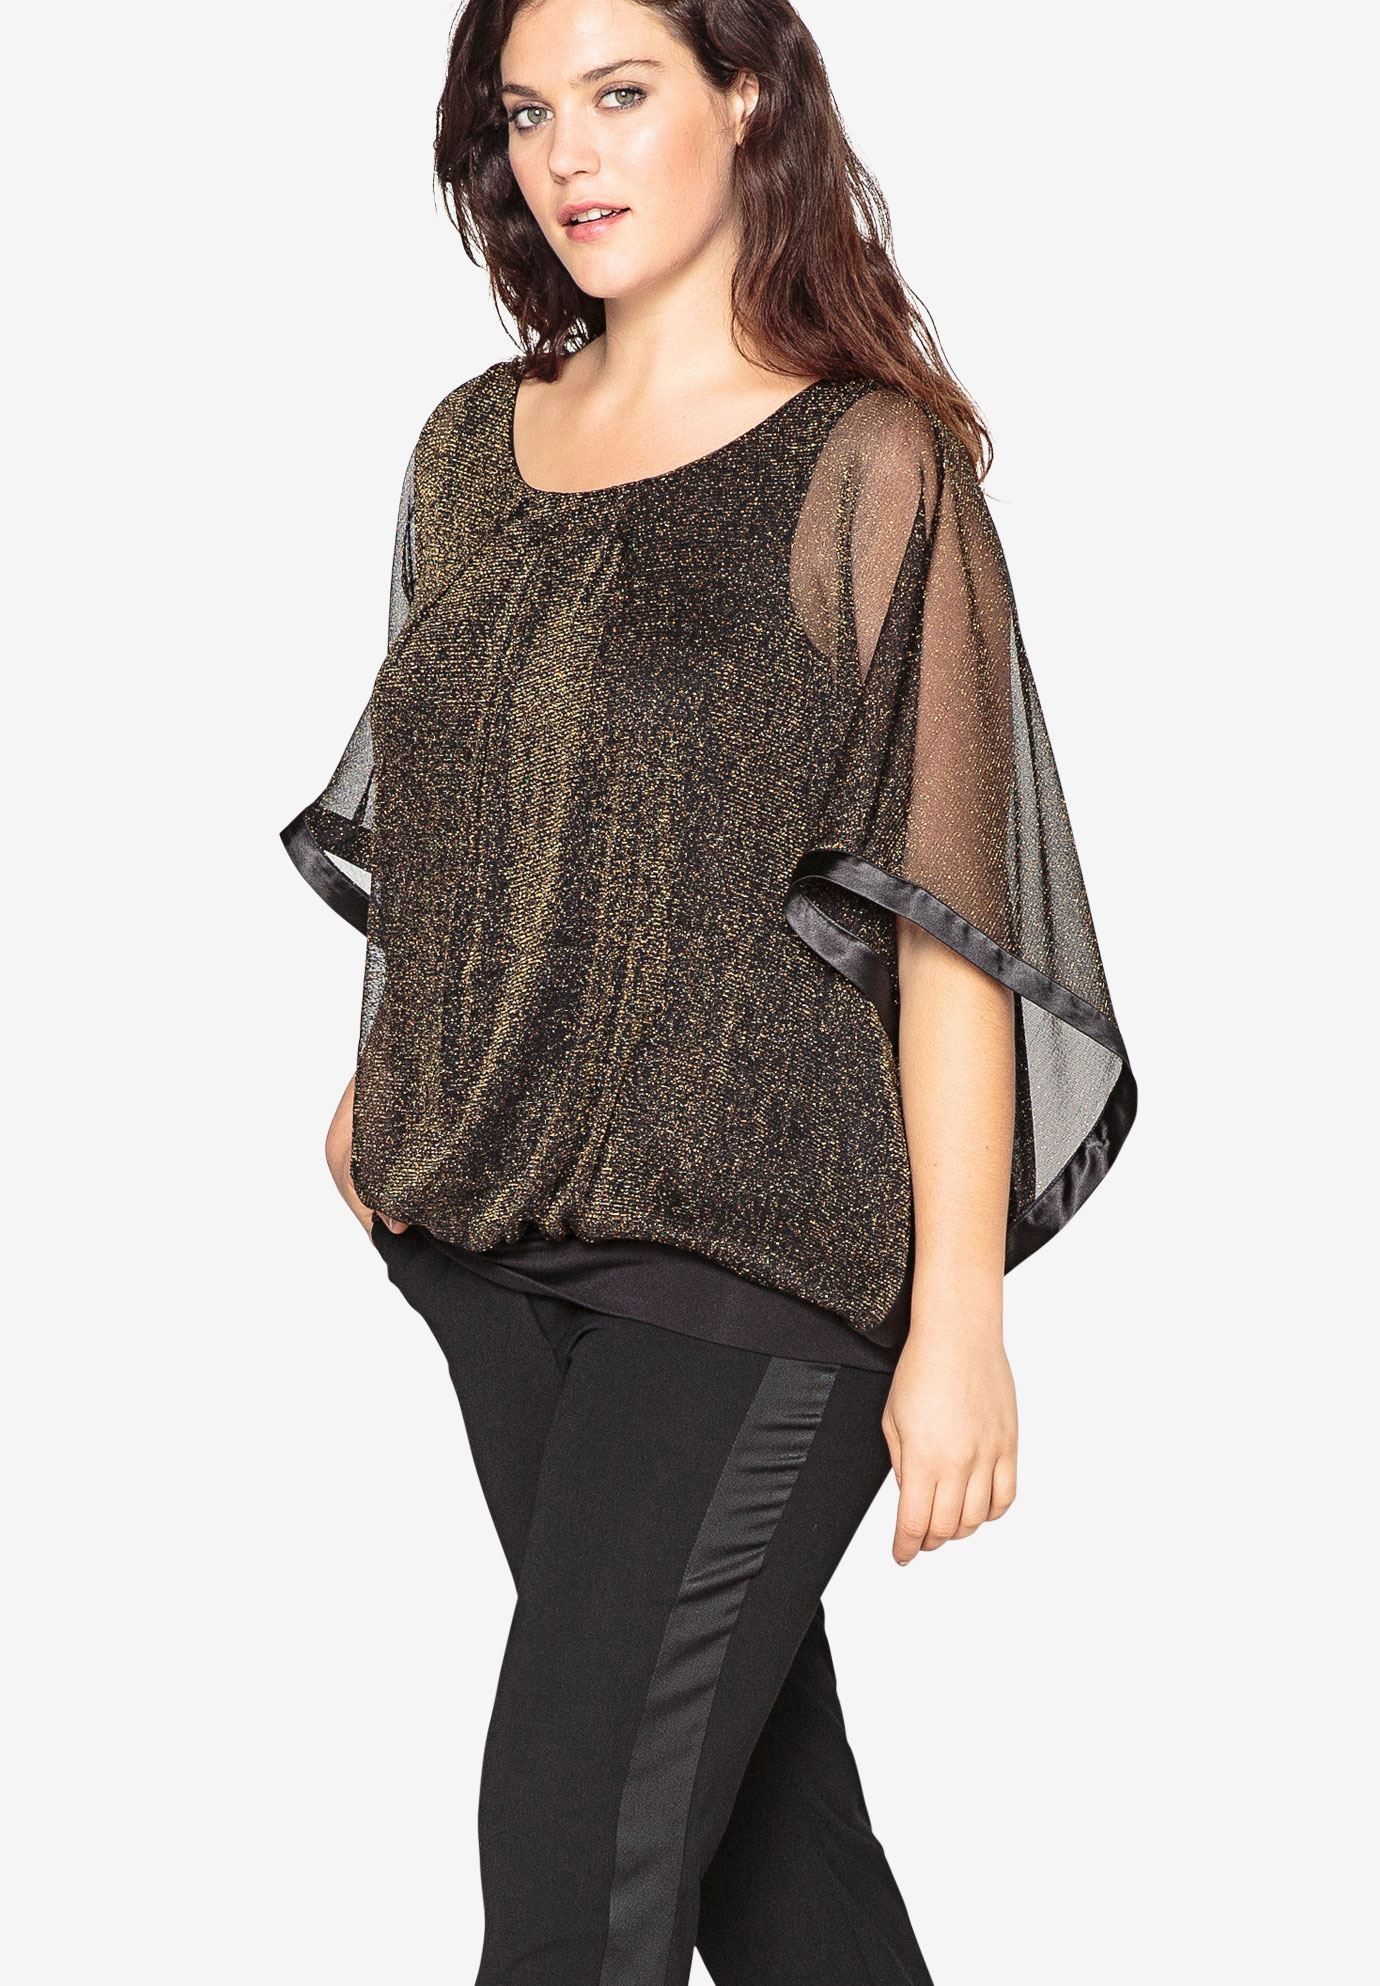 Sheer Flowing Top With Dolman Sleeves by Castaluna,